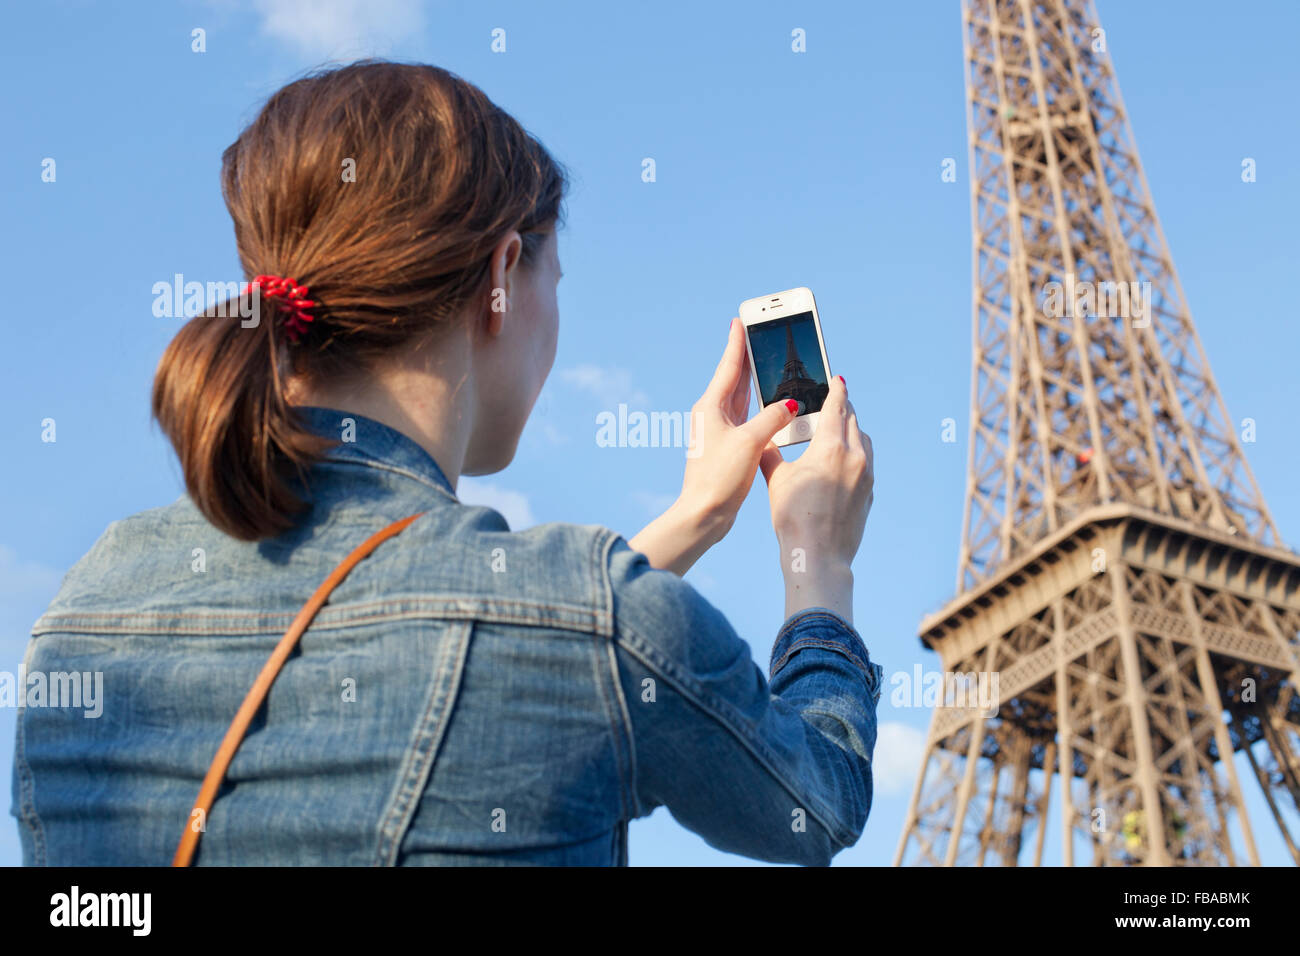 France, Ile-de-France, Paris, Rear view of woman taking picture of Eiffel Tower Stock Photo